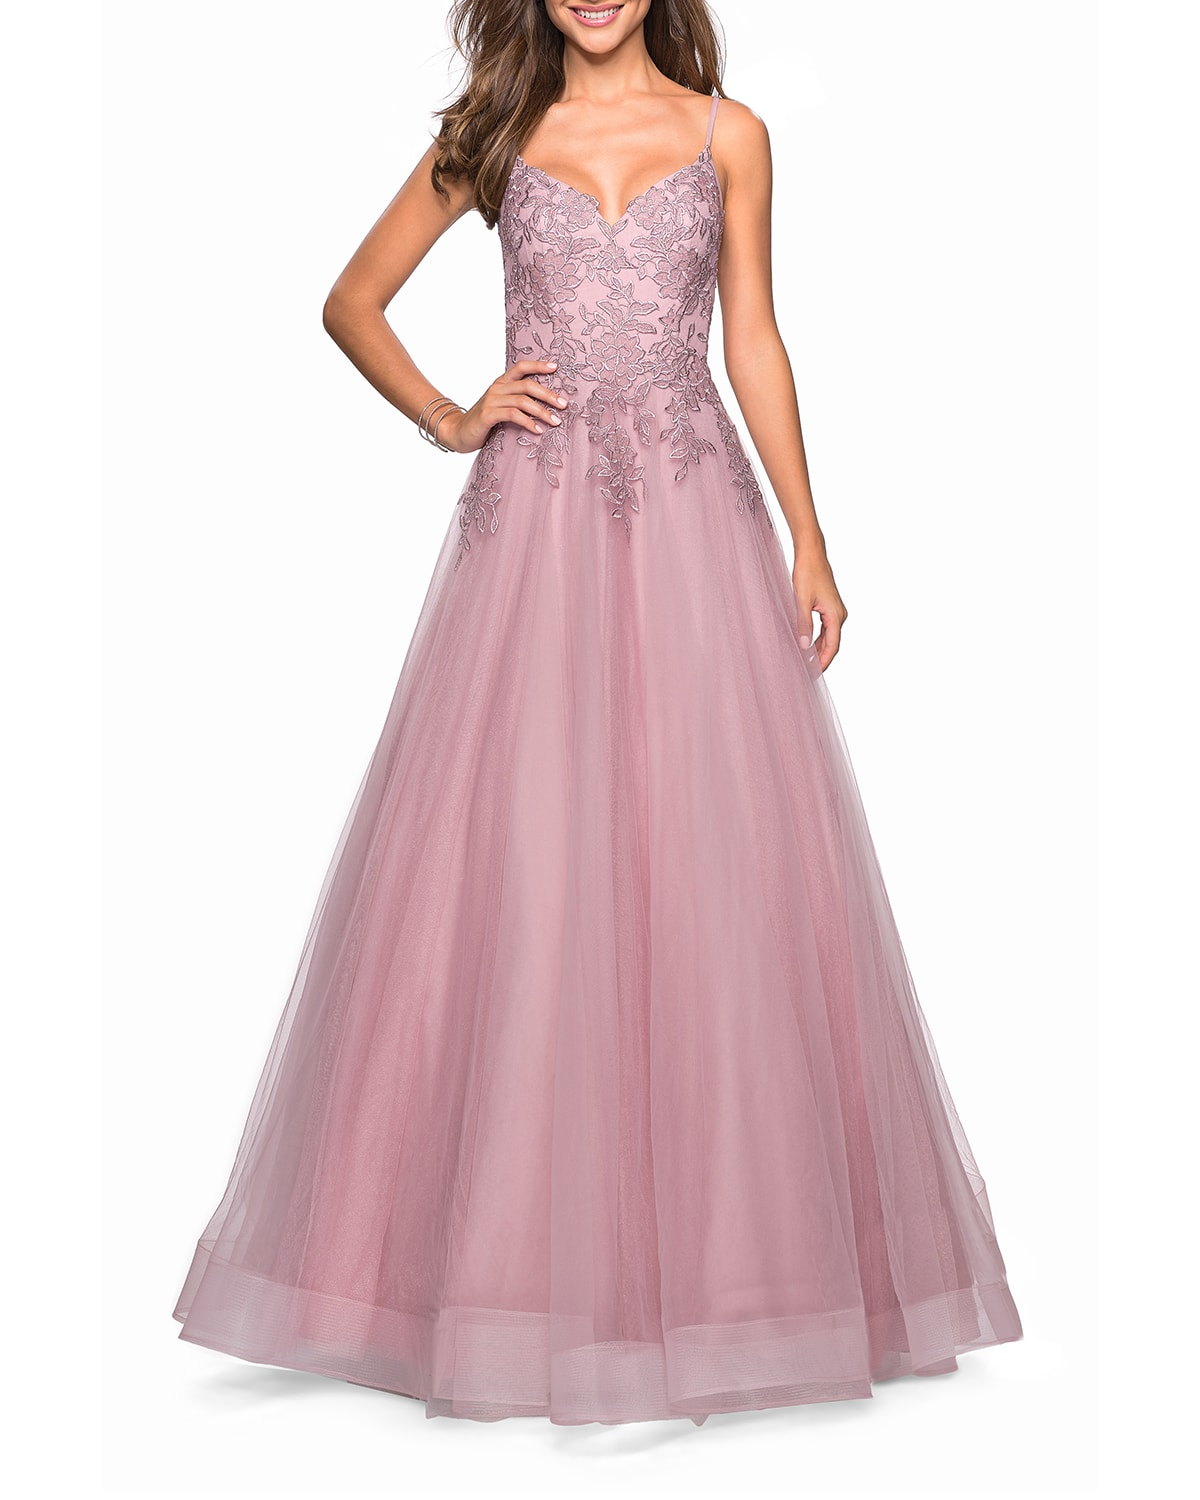 Sweetheart Sleeveless Tulle & Floral Lace Ball Gown